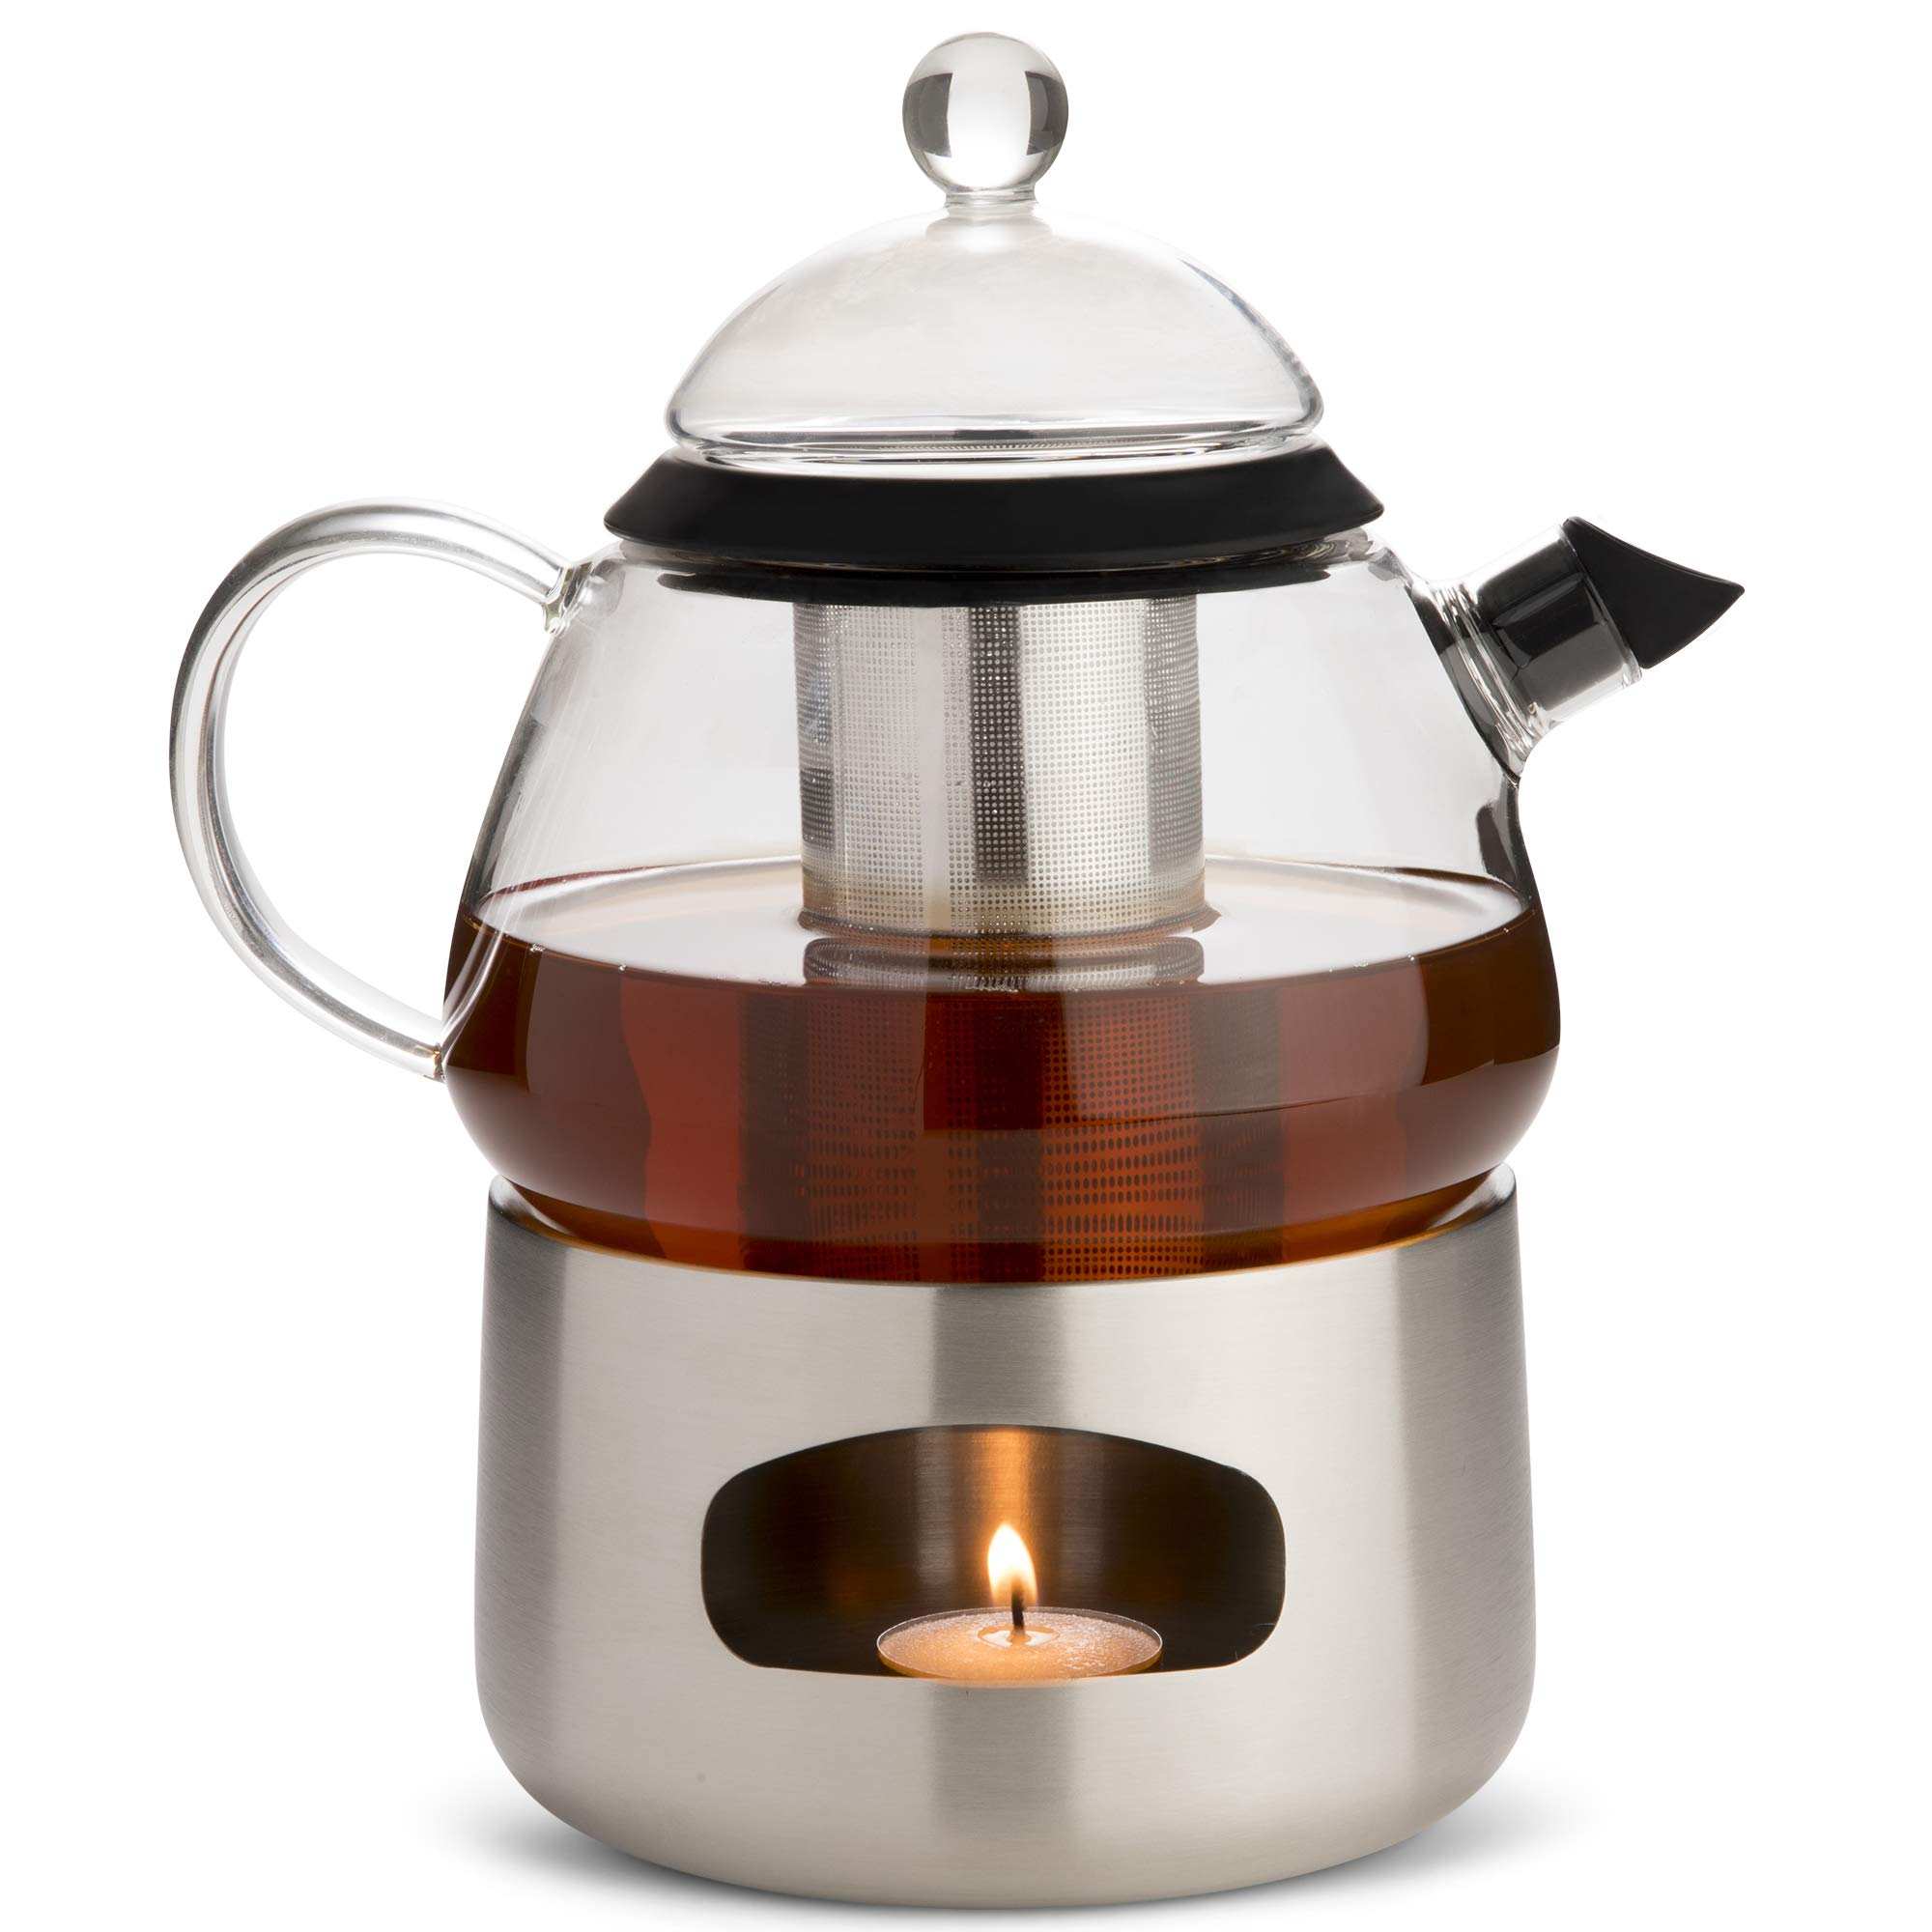 Elfin Glass Teapot with Infuser and Warmer - Blooming, Flowering and Loose Leaf Tea Maker Gift Set